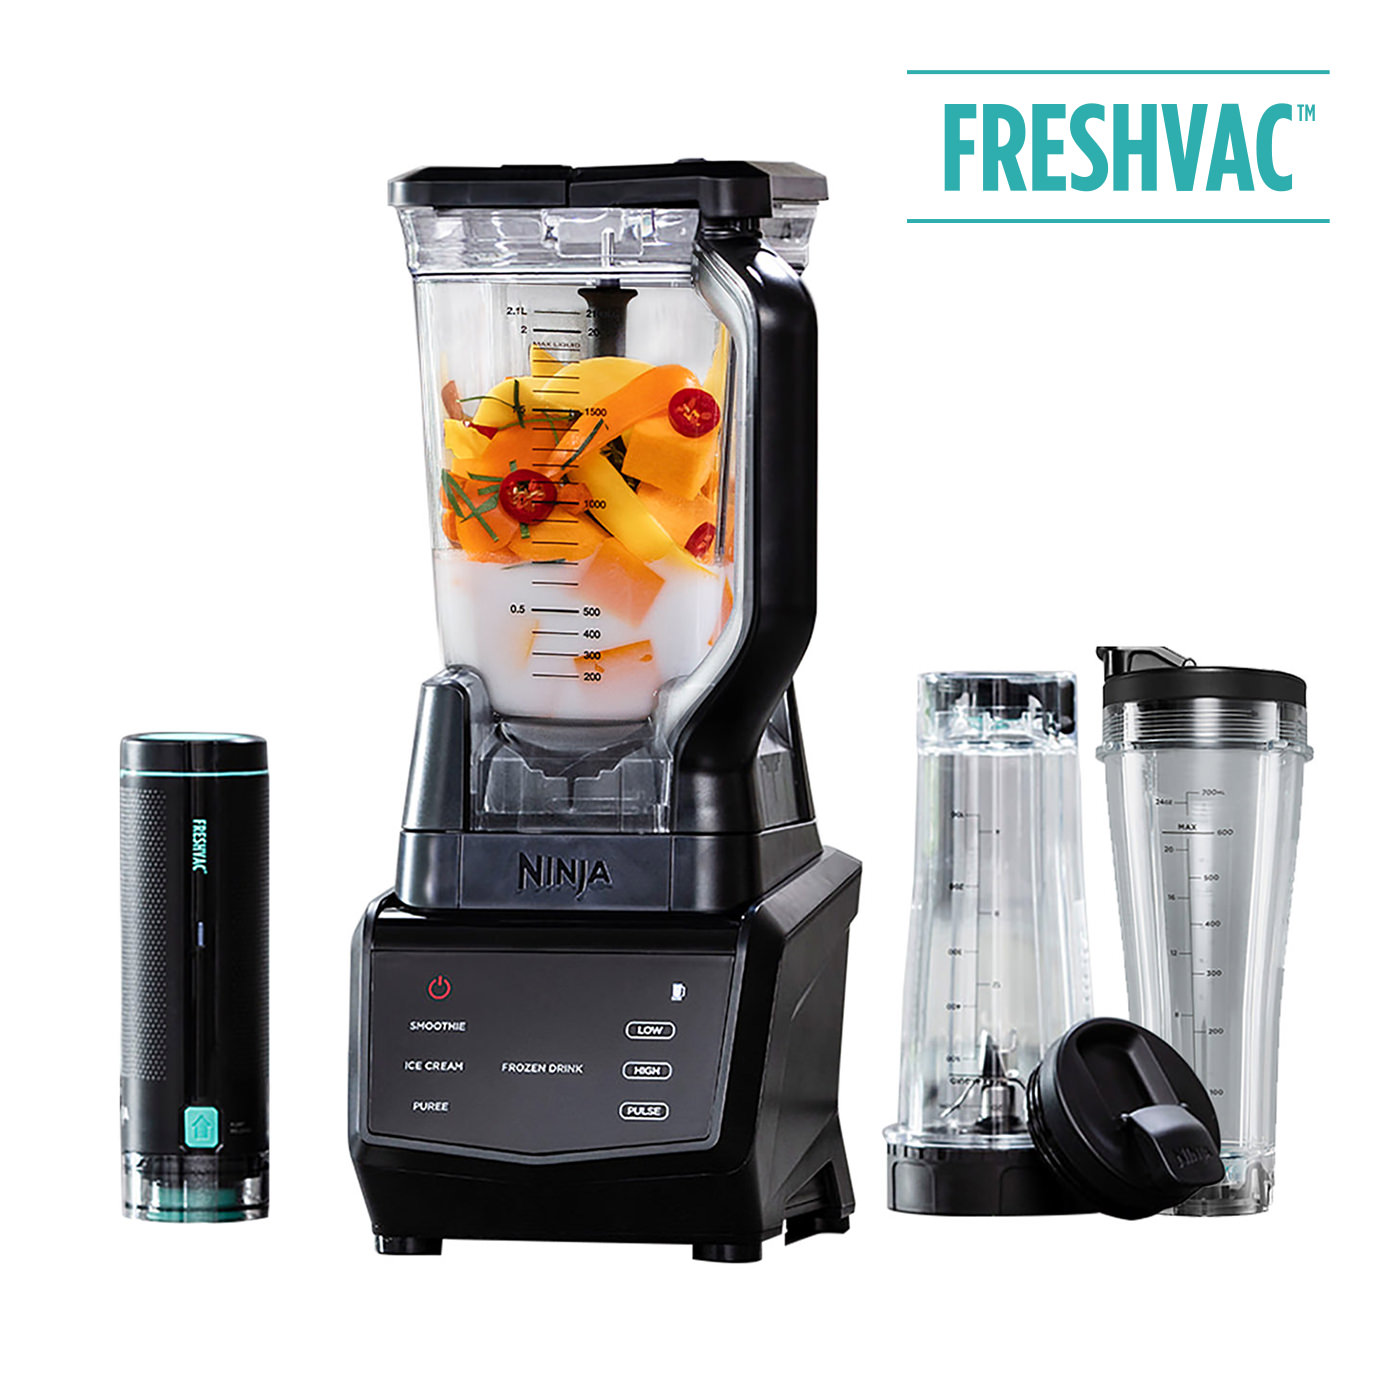 Ninja 1100W Blender with FreshVac Technology CT660UKV